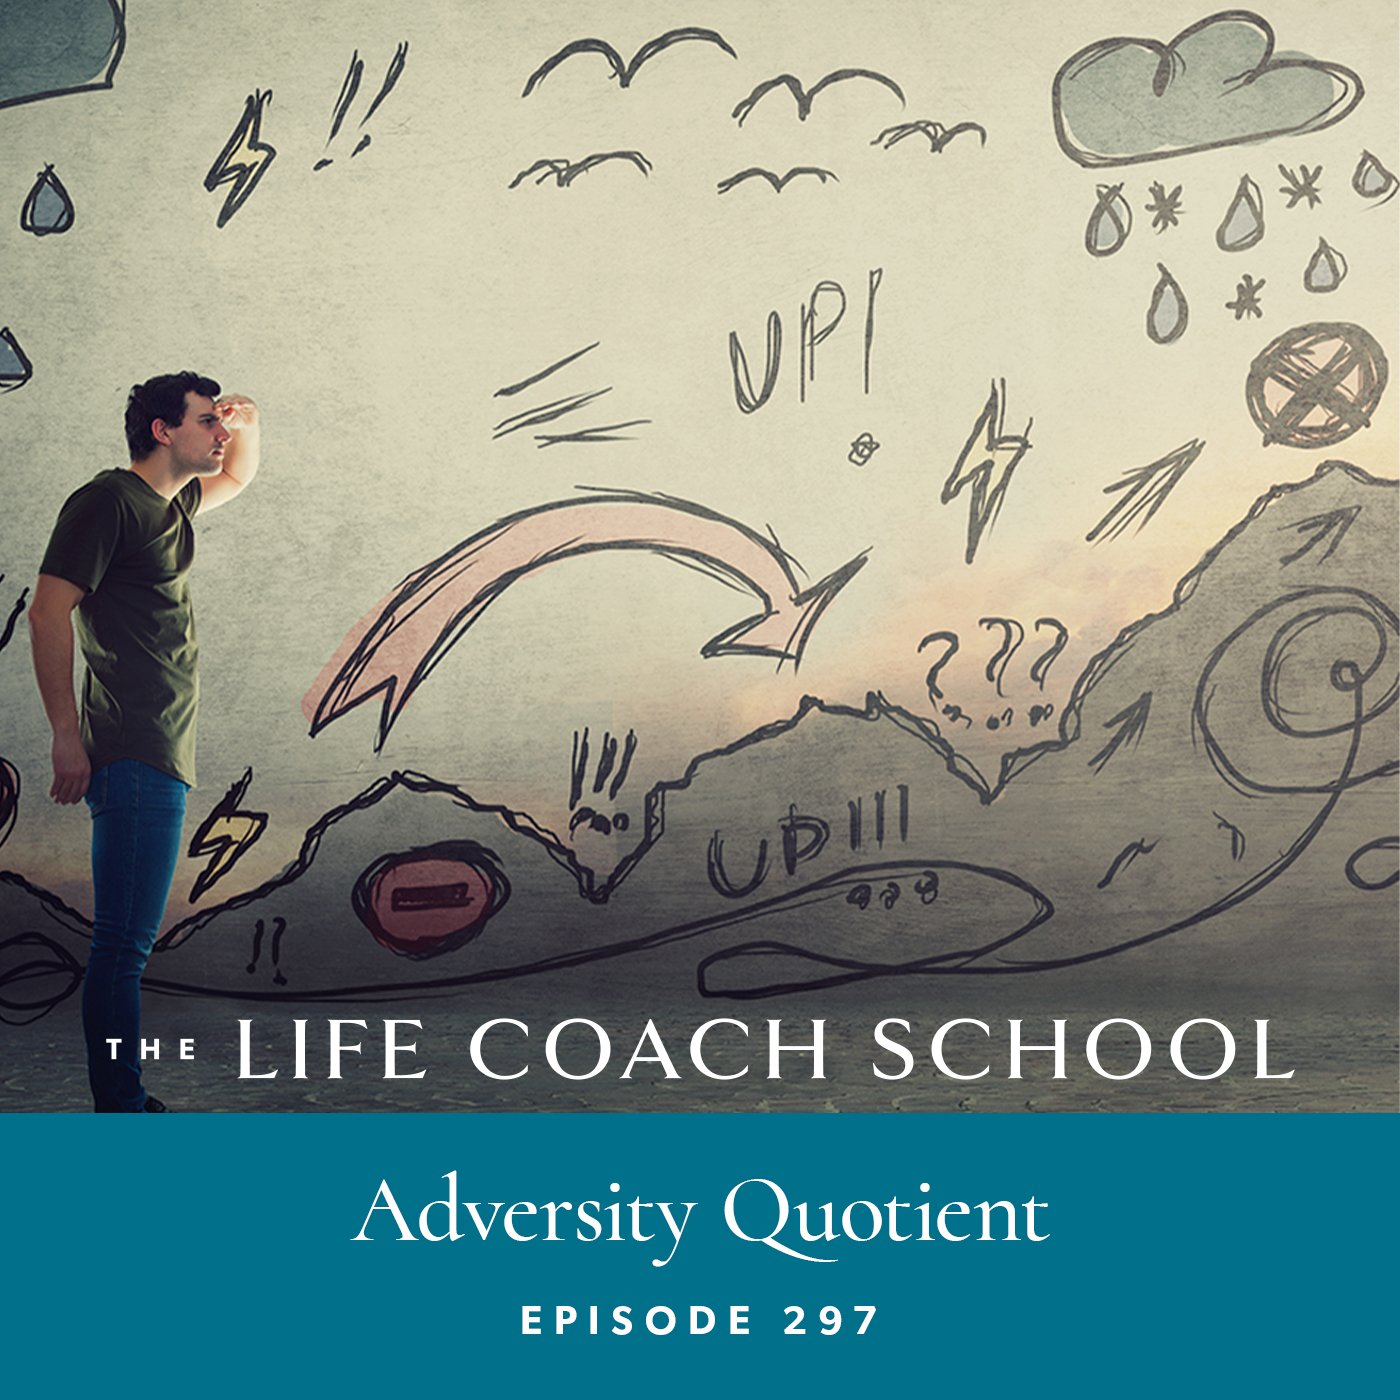 The Life Coach School Podcast with Brooke Castillo | Episode 297 | Adversity Quotient